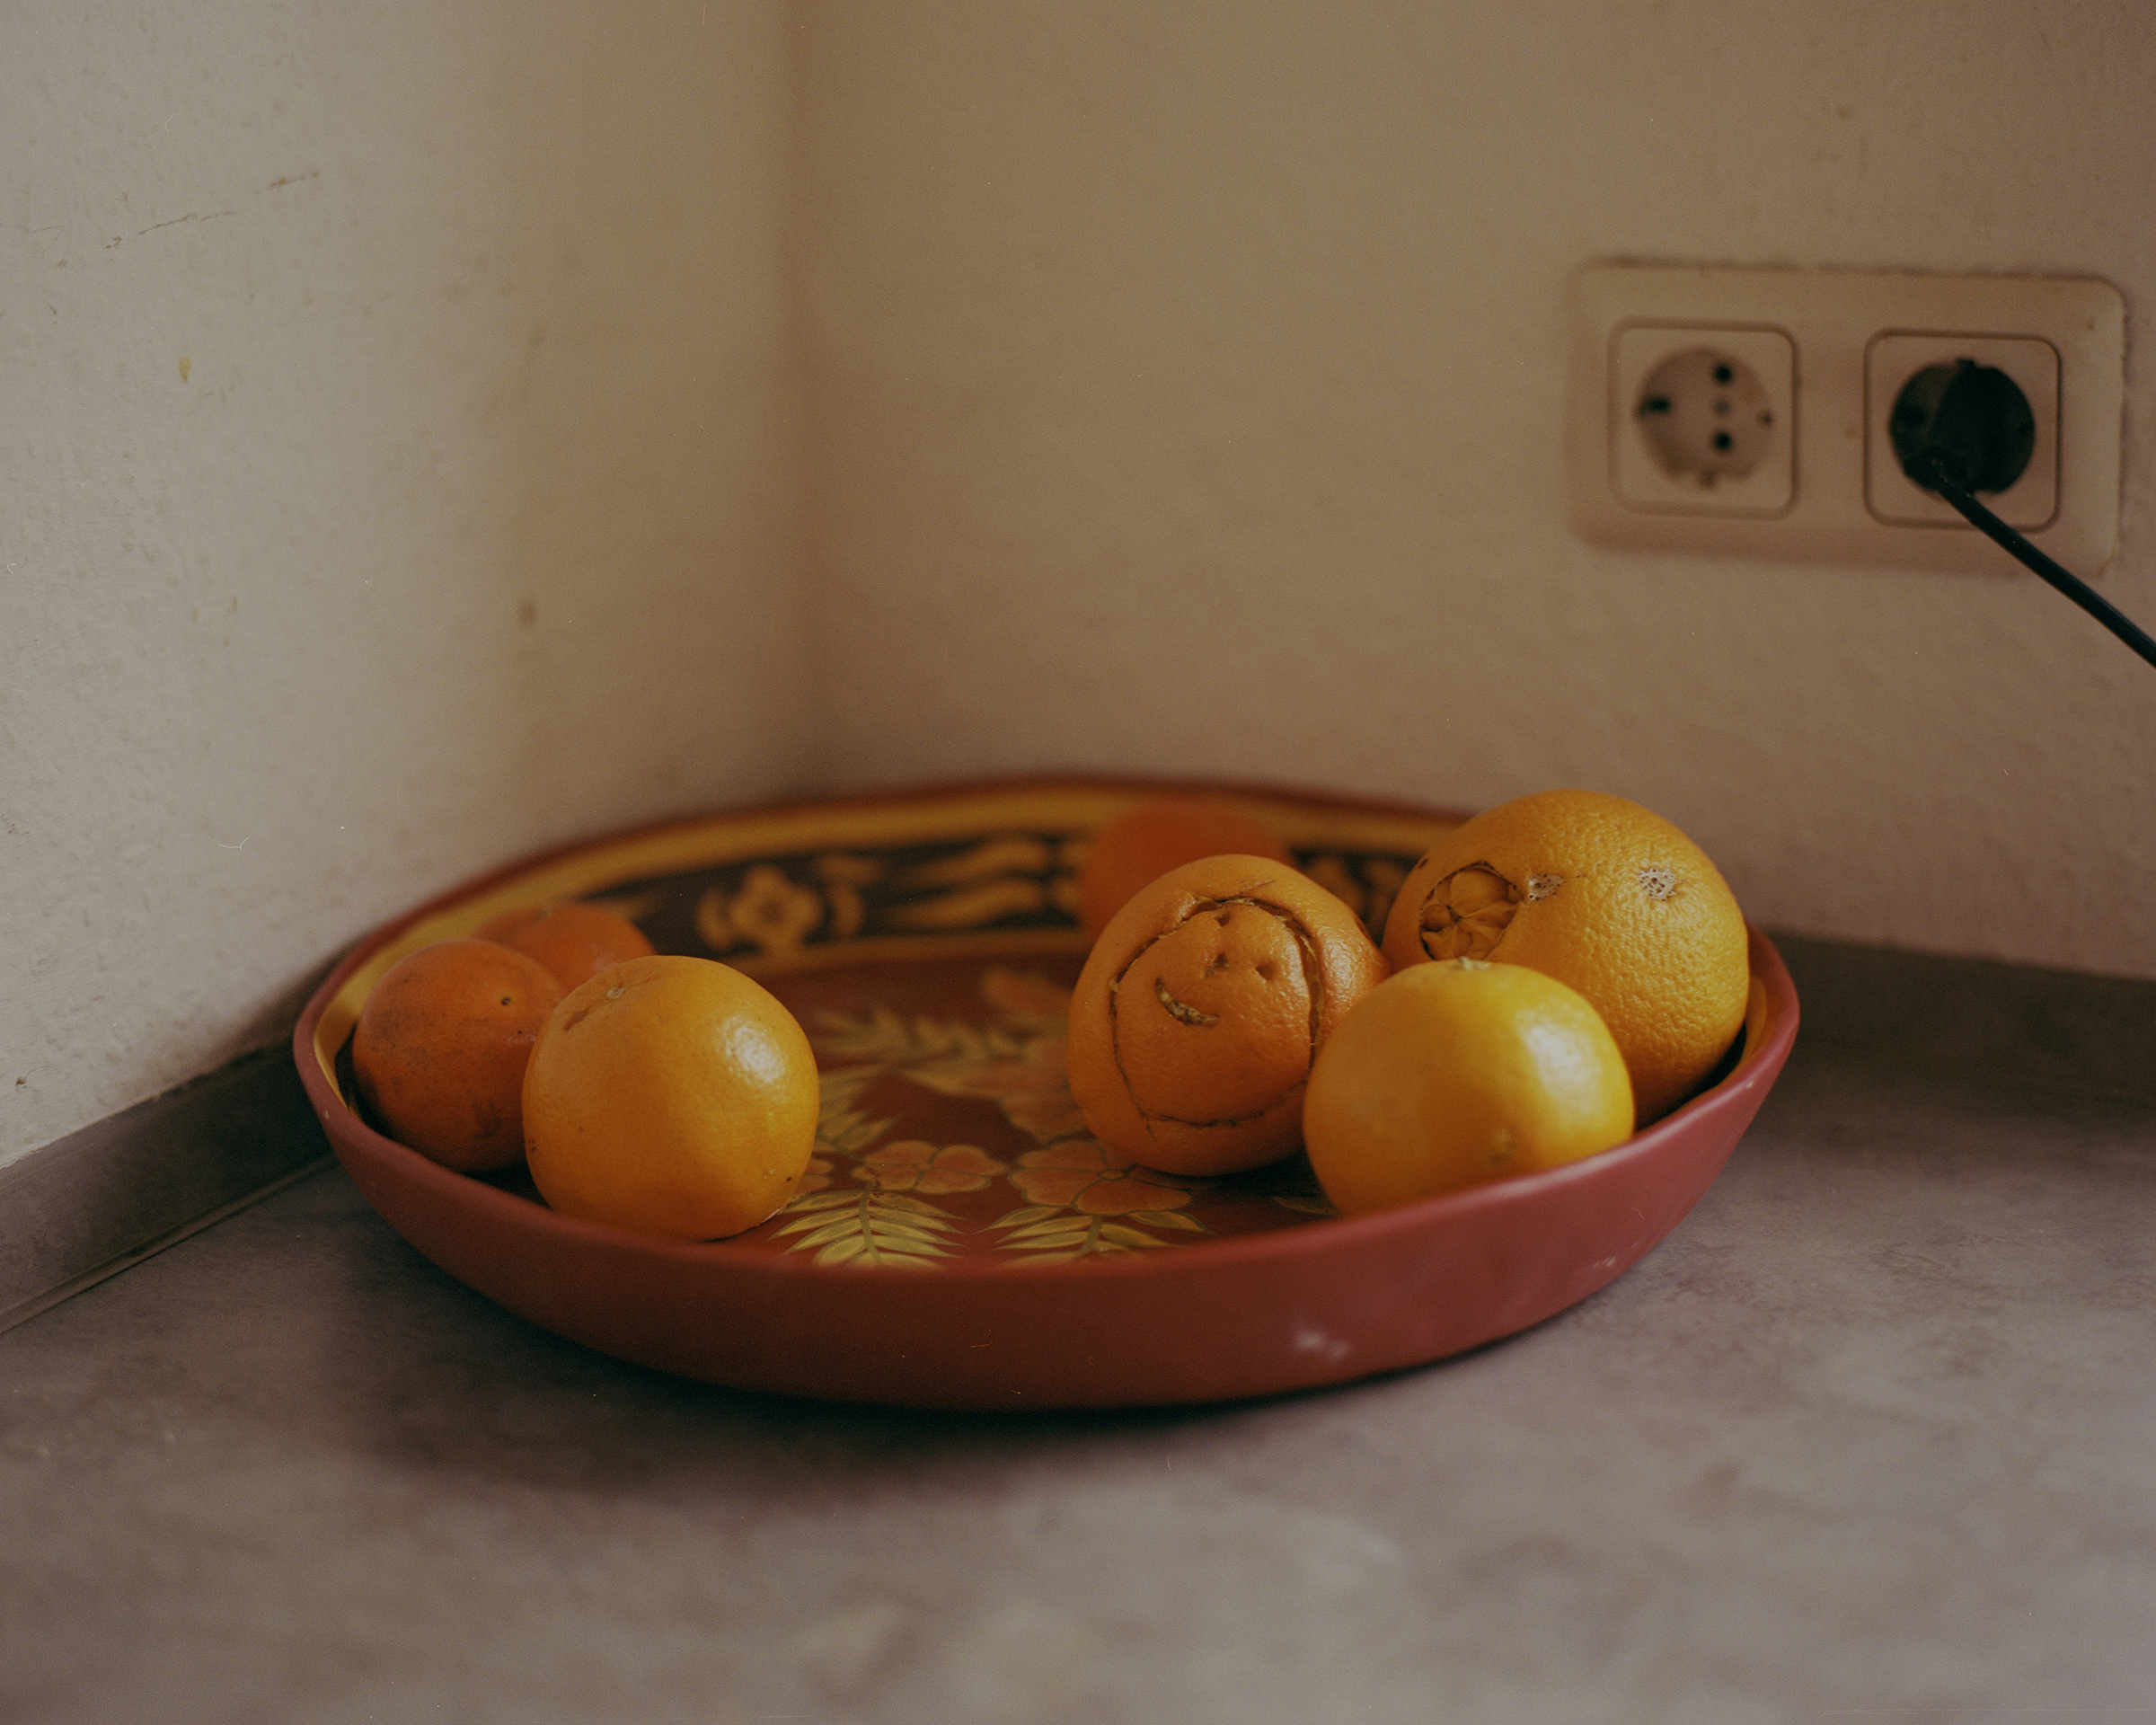 Oranges in Hanan's kitchen.